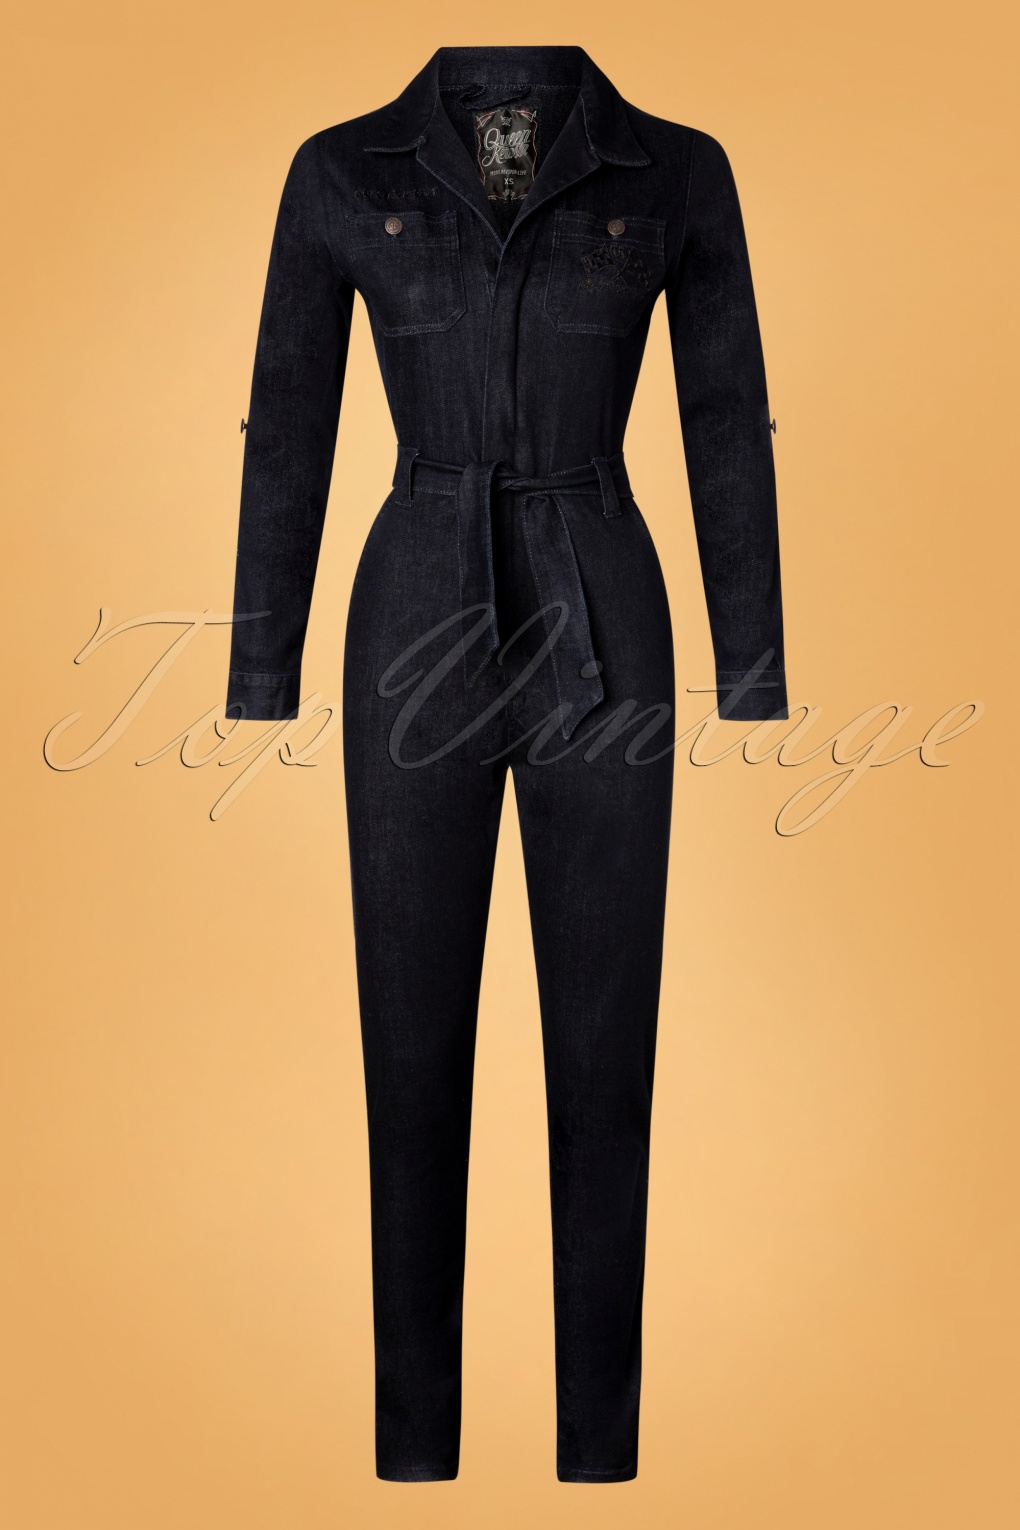 Vintage Overalls 1910s -1950s History & Shop Overalls 50s Workwear Overall in Dark Denim Blue £98.45 AT vintagedancer.com